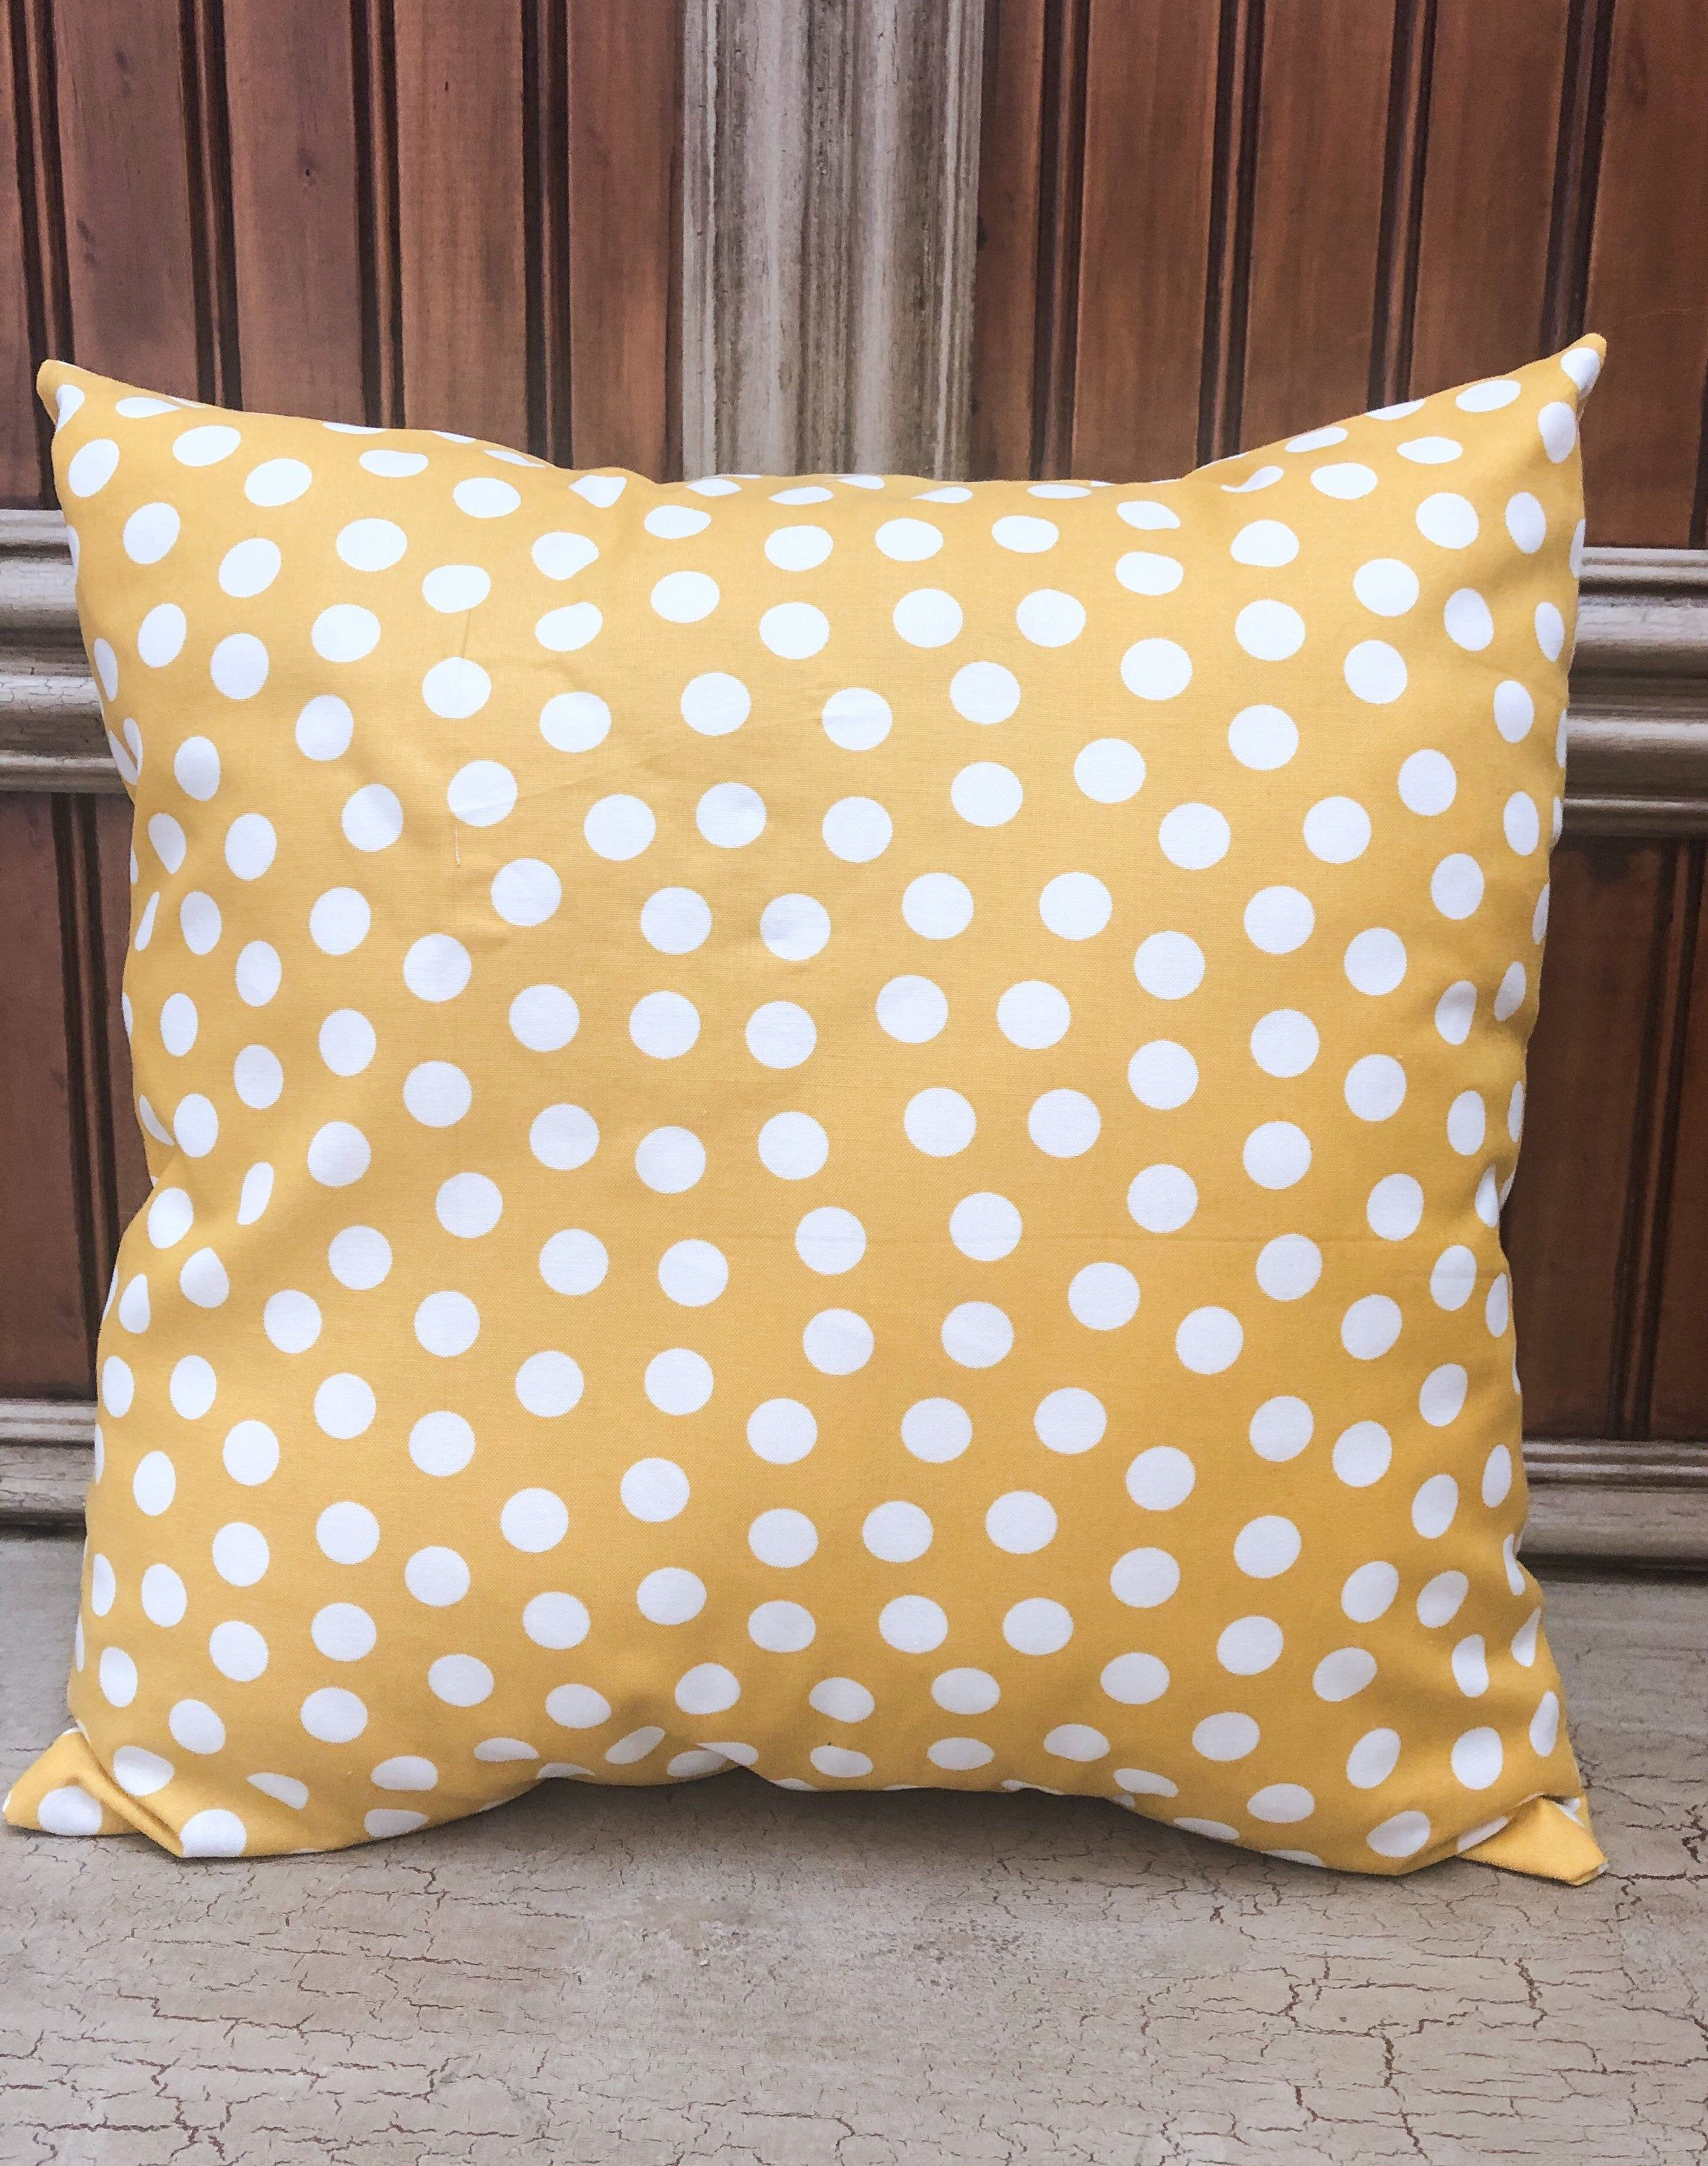 Polka Dot Pillow Covers Sofa Pillows Yellow Throw Pillows